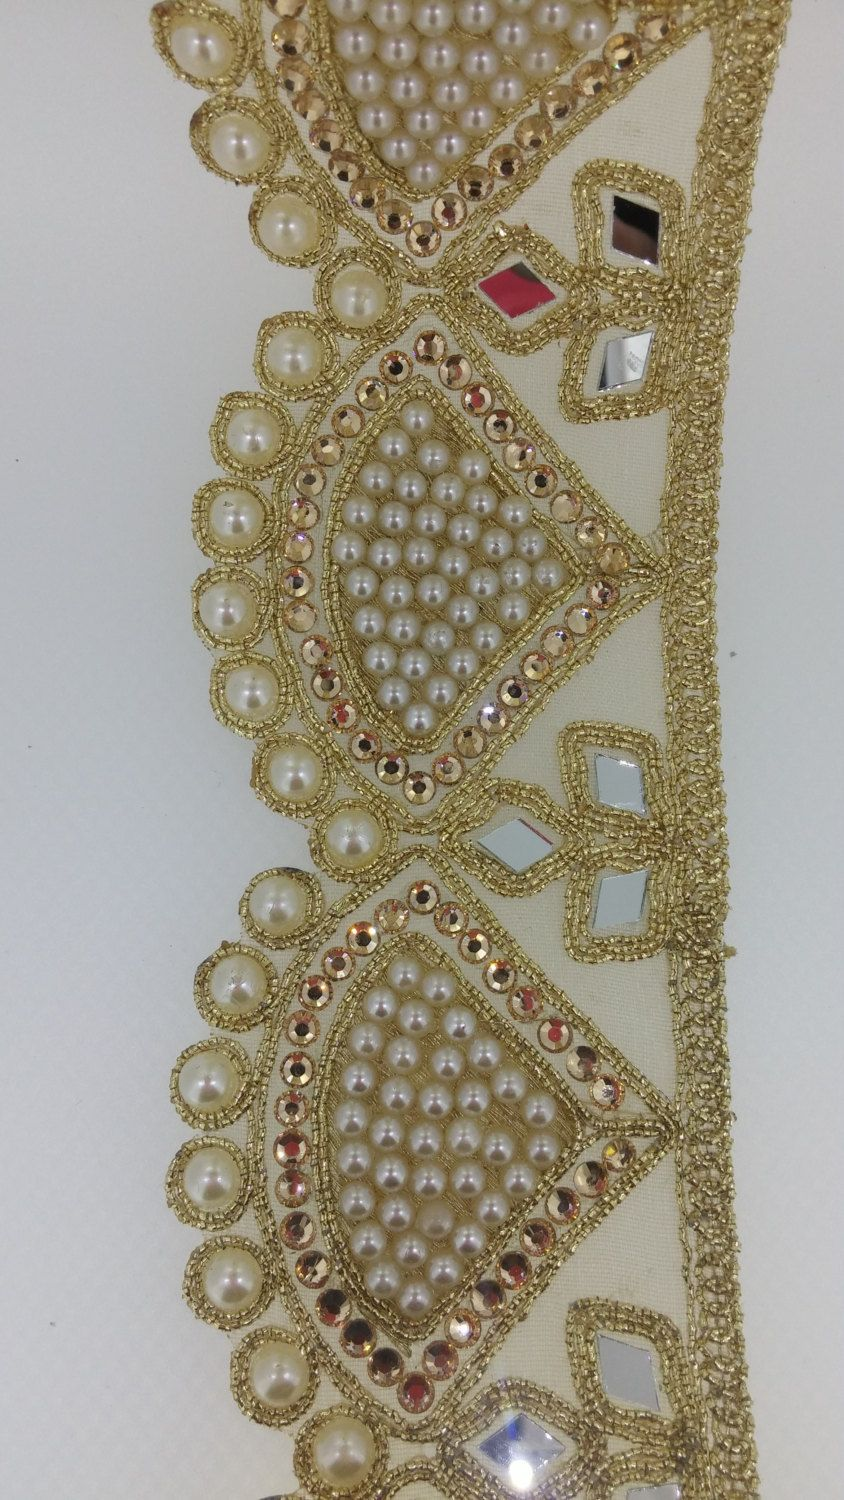 NEUF mètres Attractive Indian Fabric Gold Cristal et Perles Ruban Bordure En Dentelle